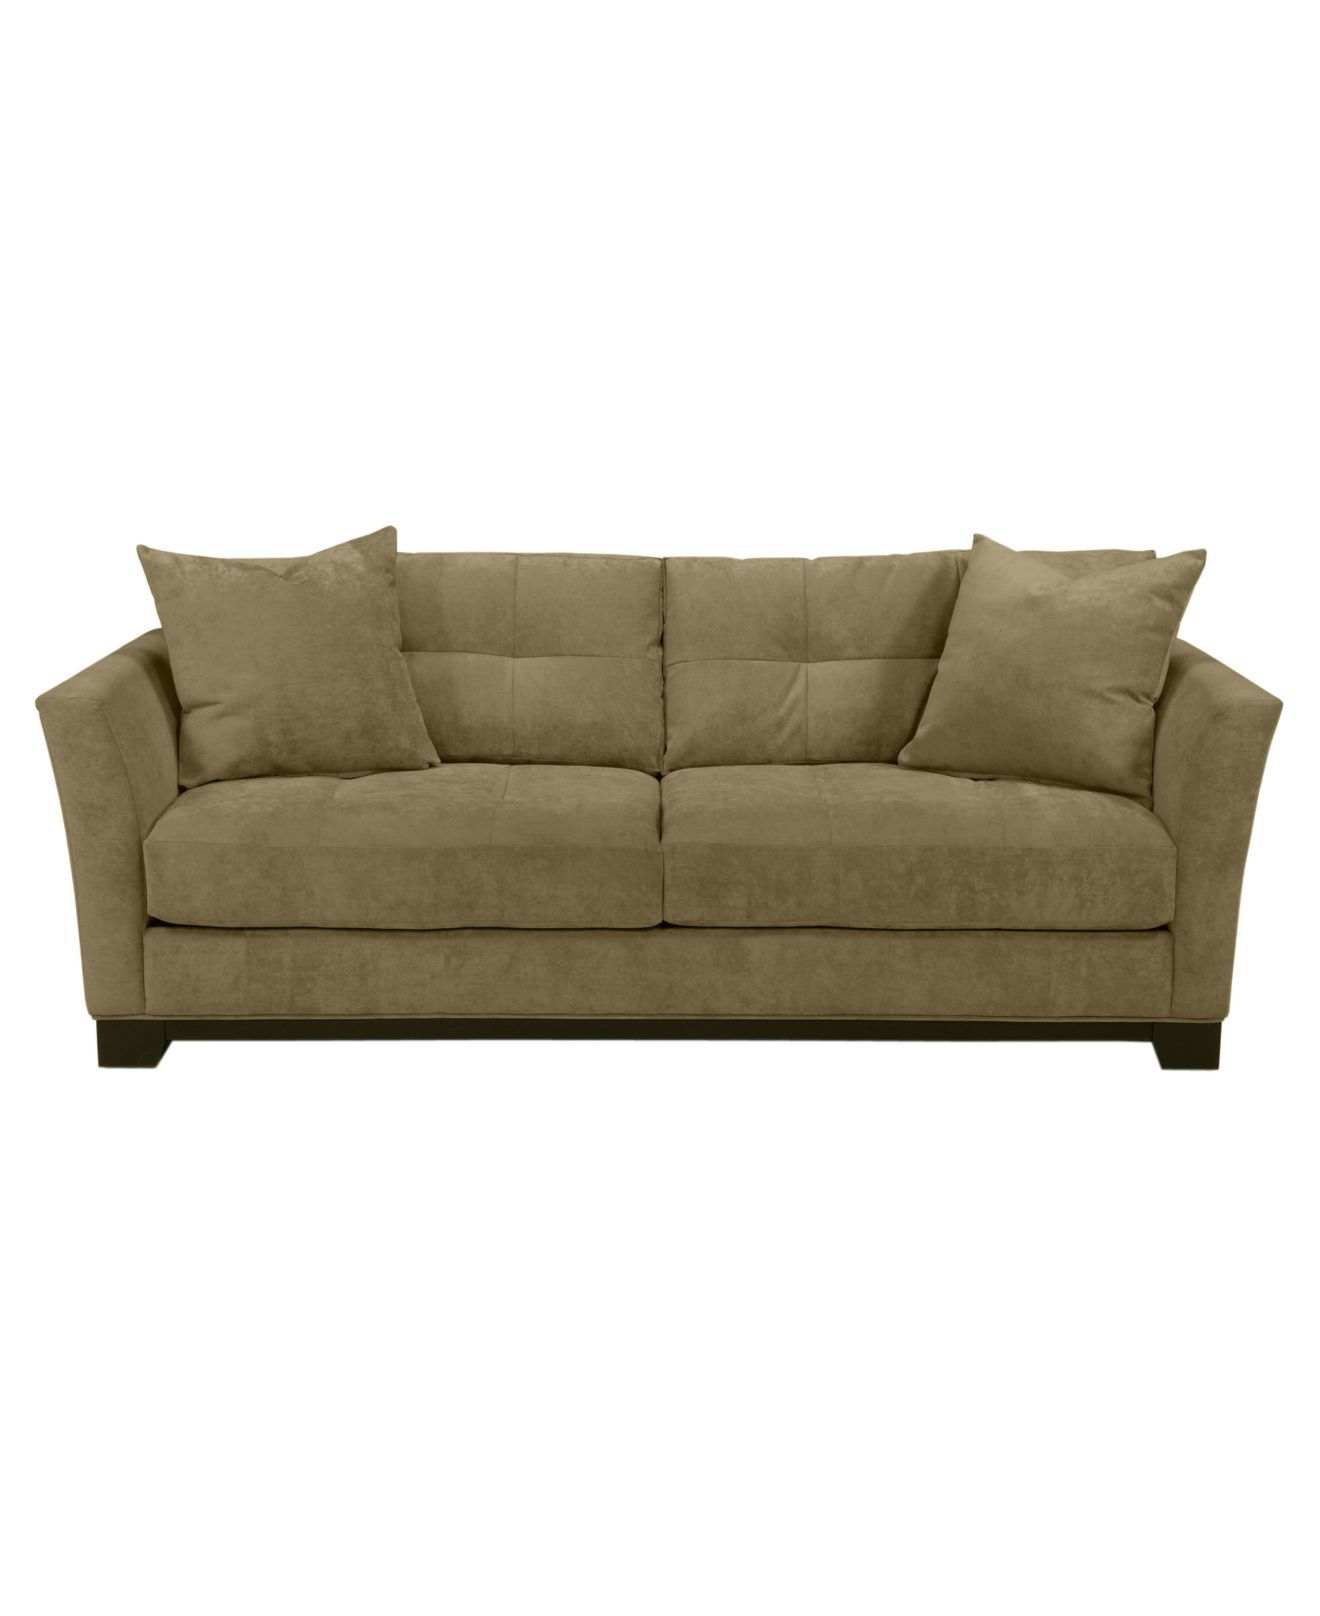 clarke fabric queen sleeper sofa bed l shaped sofas for small rooms elliot microfiber 90 quotw x 37 quotd